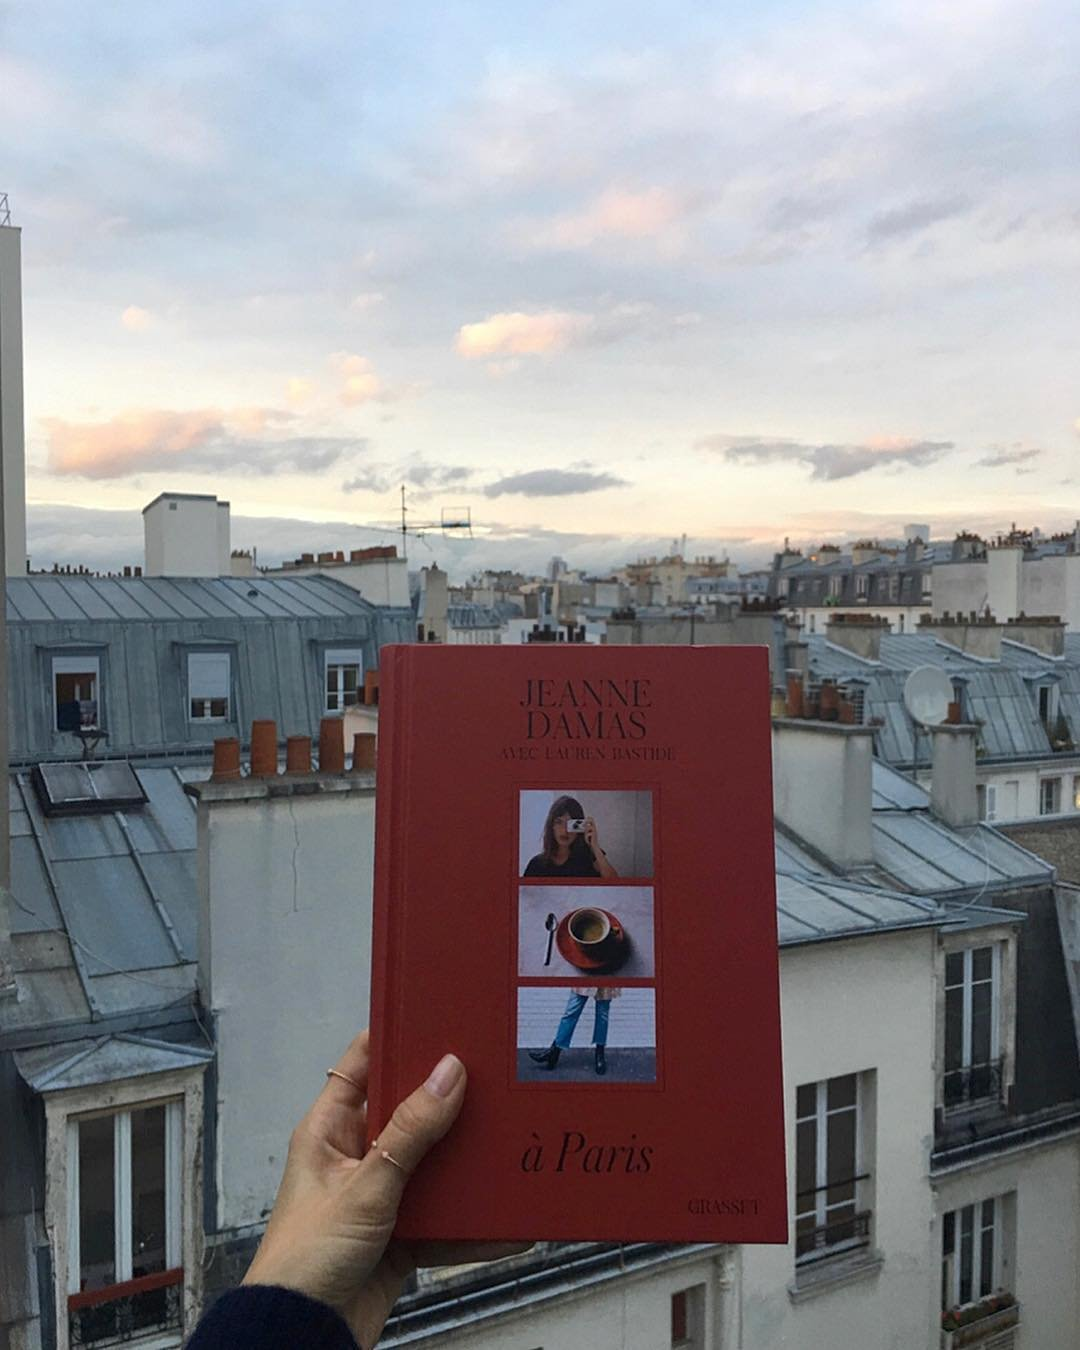 - WITH THIS BOOK, YOU DON'T NEED TO TRAVEL TO PARIS TO TAKE ON THE LIFESTYLE... BUT WE'RE NOT SAYING IT DOESN'T HURT TO TRY ;)